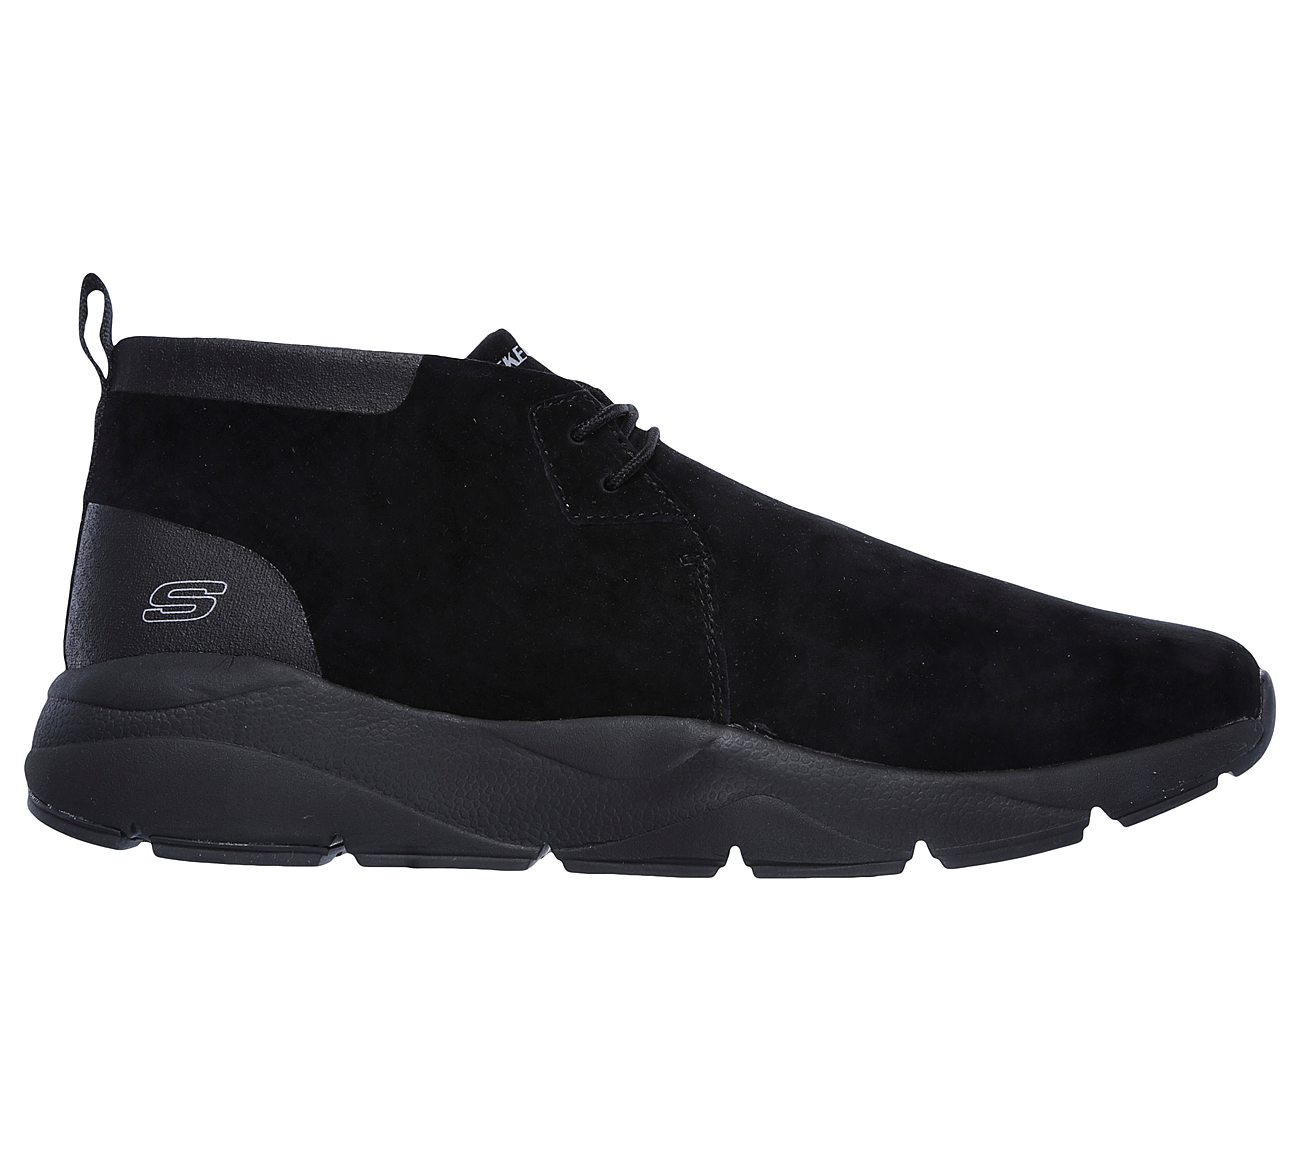 SKECHERS Relaxed Fit®: Recent - Handler JHuWhtj